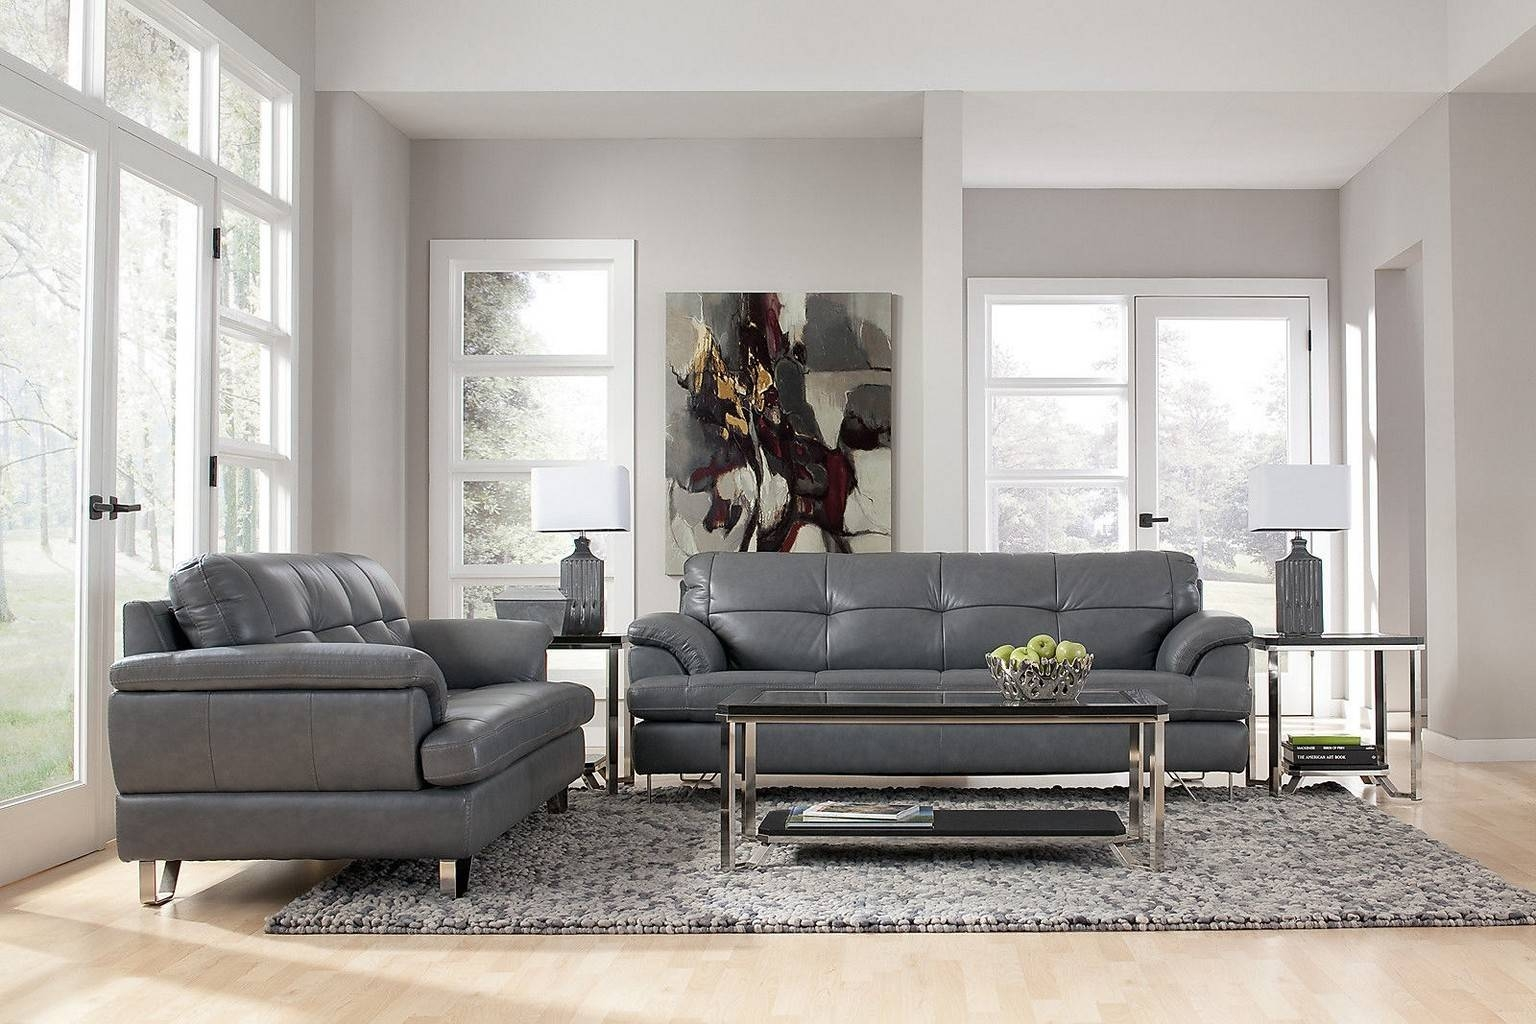 Grey Couch Living Room Ideas - Homestylediary throughout Gray Sofas For Living Room (Image 11 of 15)